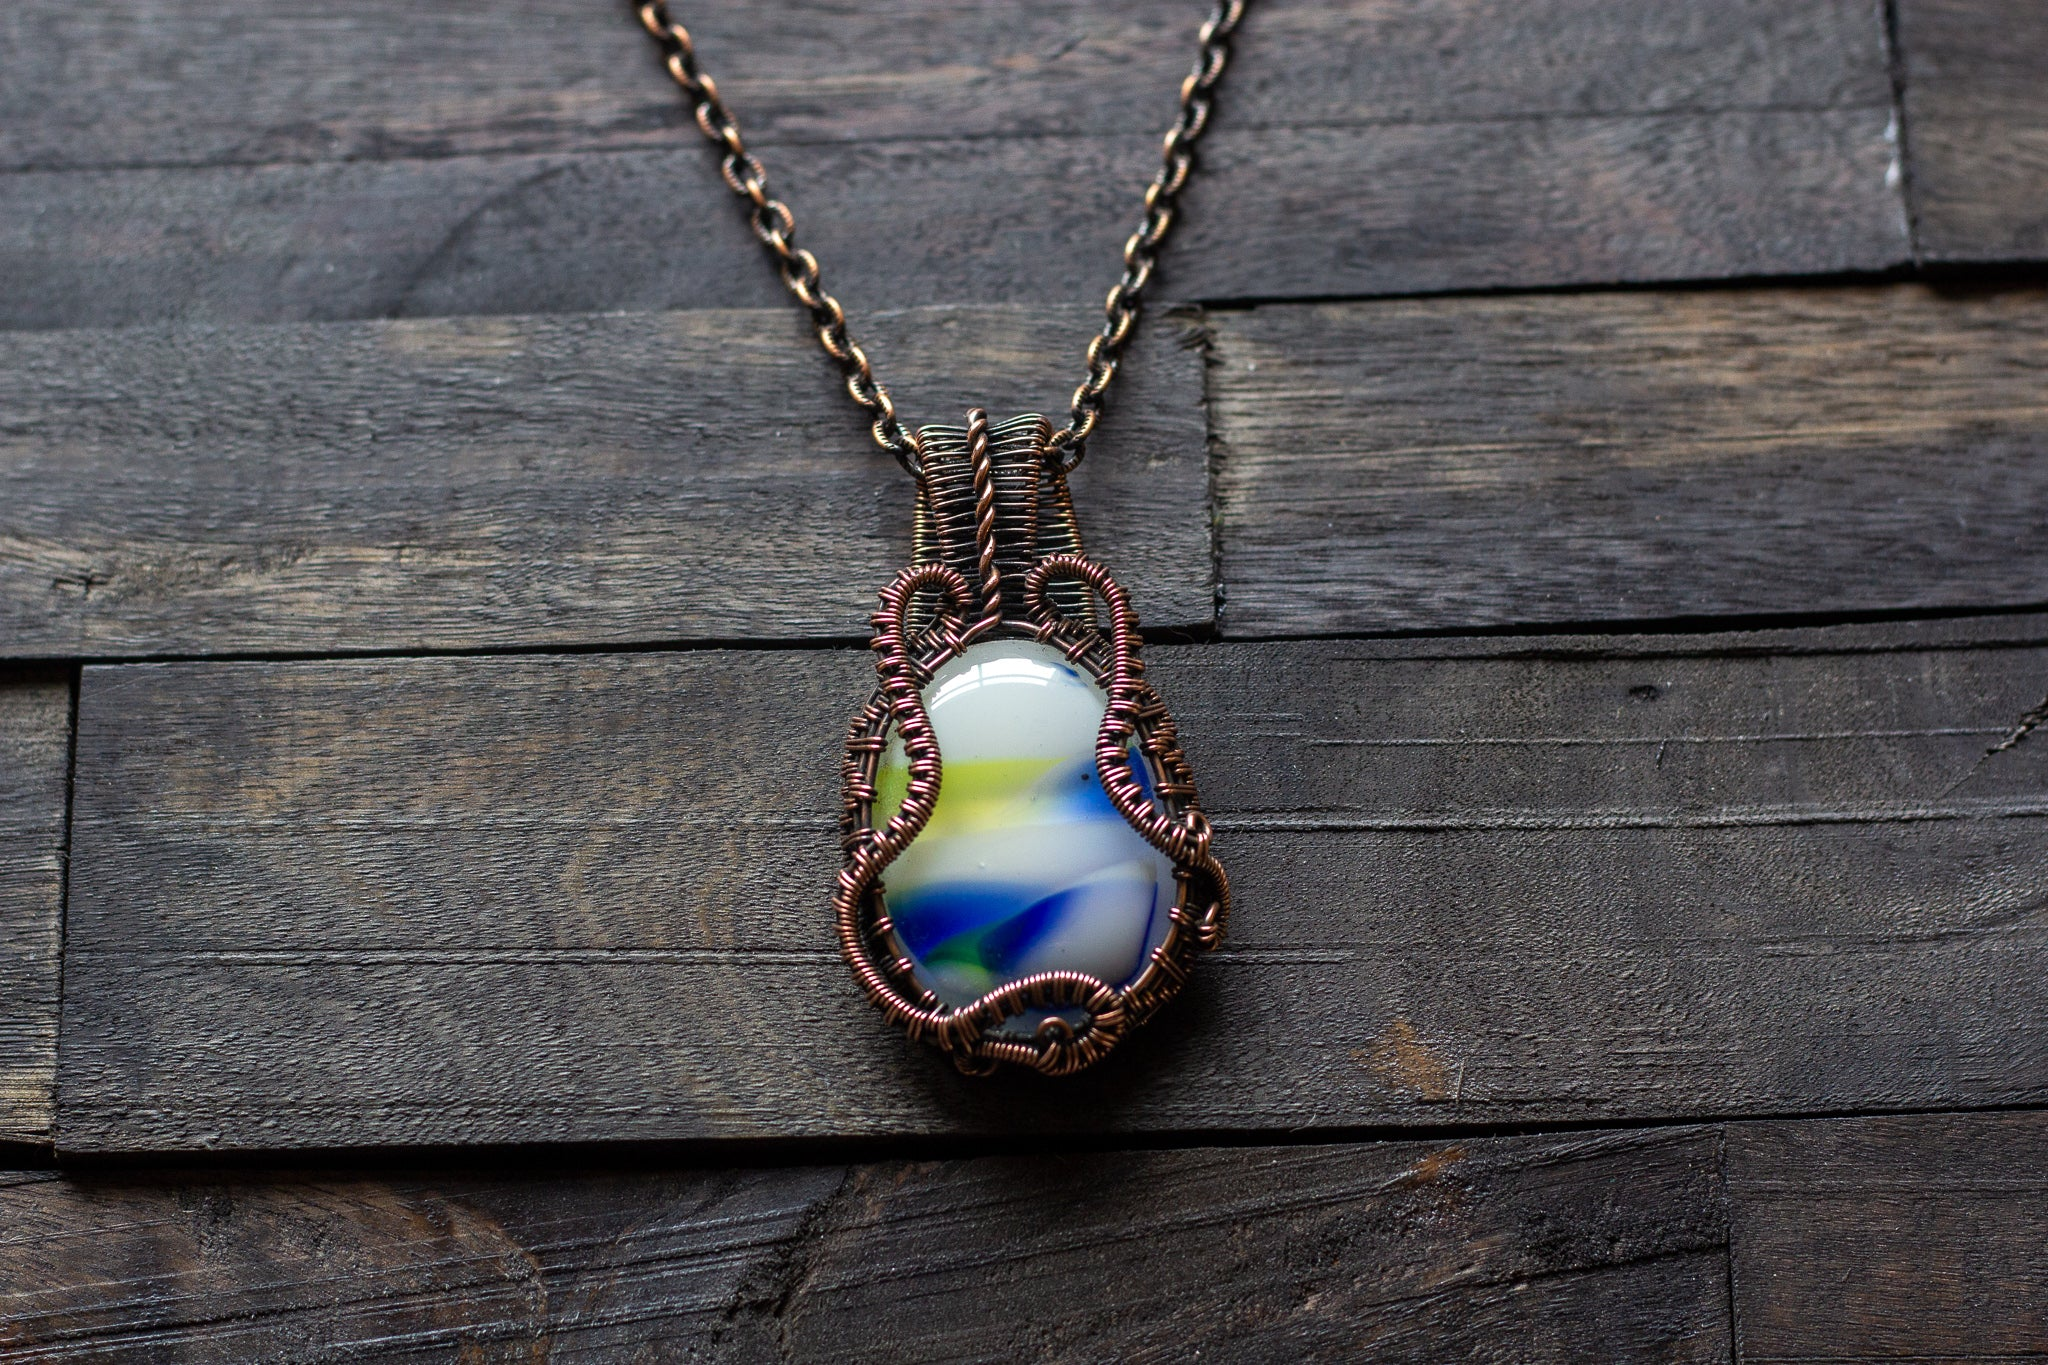 Streaked Blue, Yellow and White Fused Glass Pendant with Copper Wire Wrapping